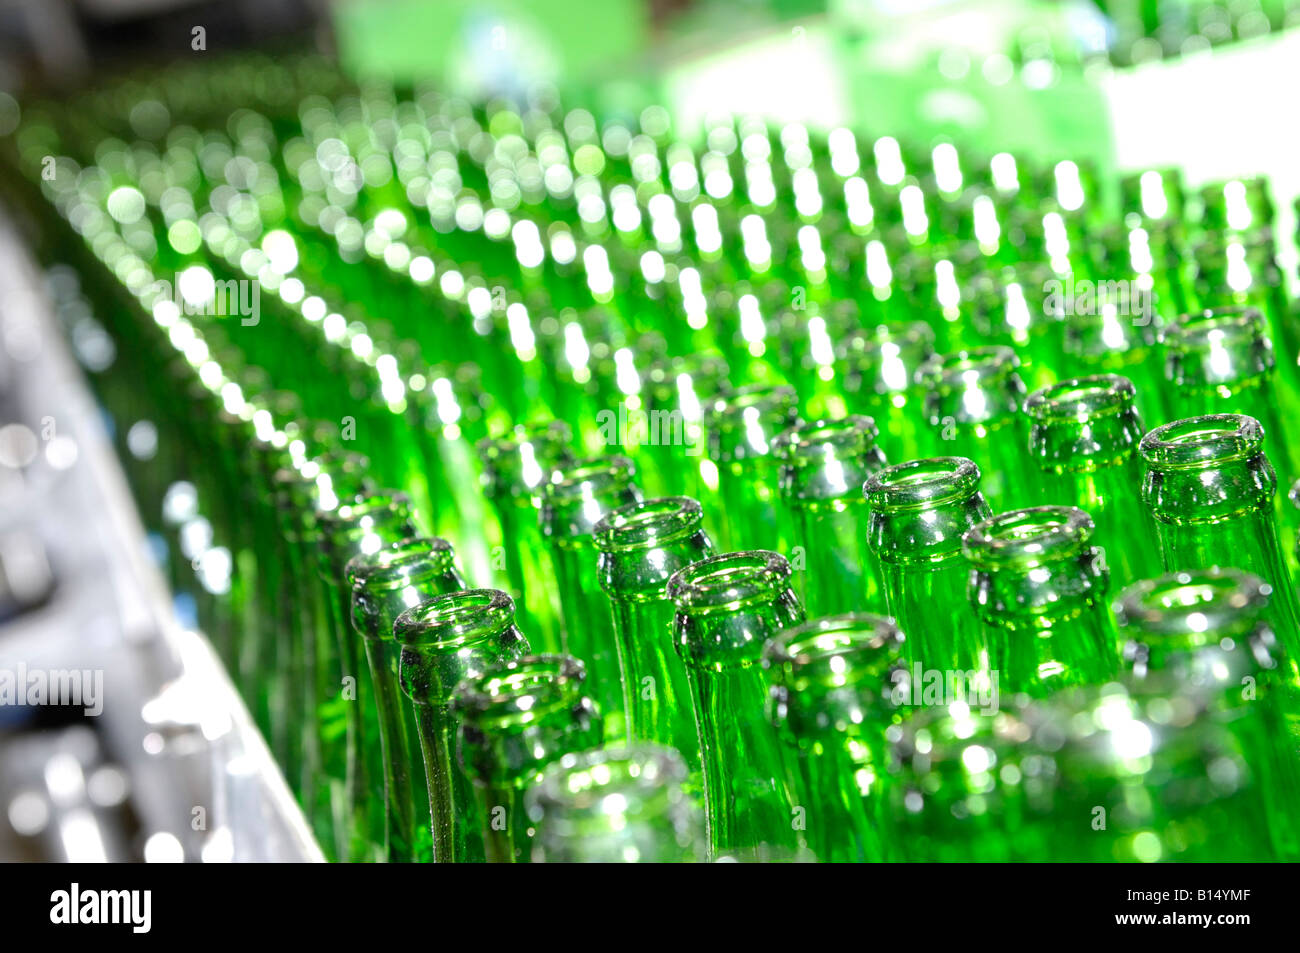 Green bottles - Stock Image